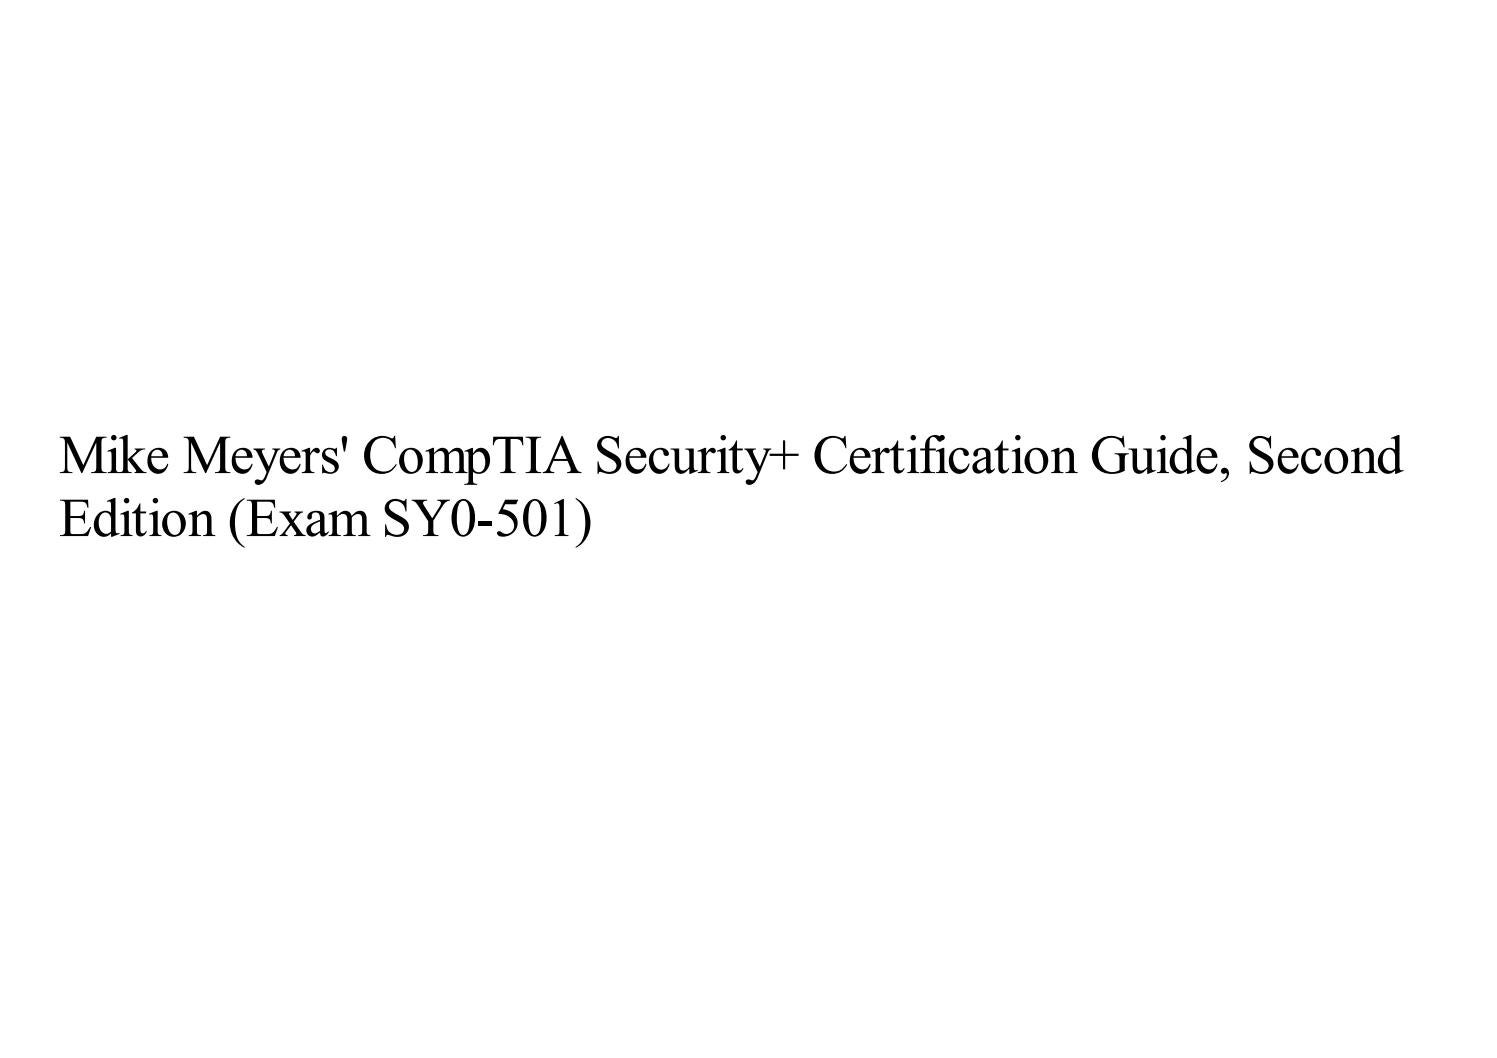 Exam SY0-501 Certification Guide Second Edition Mike Meyers CompTIA Security